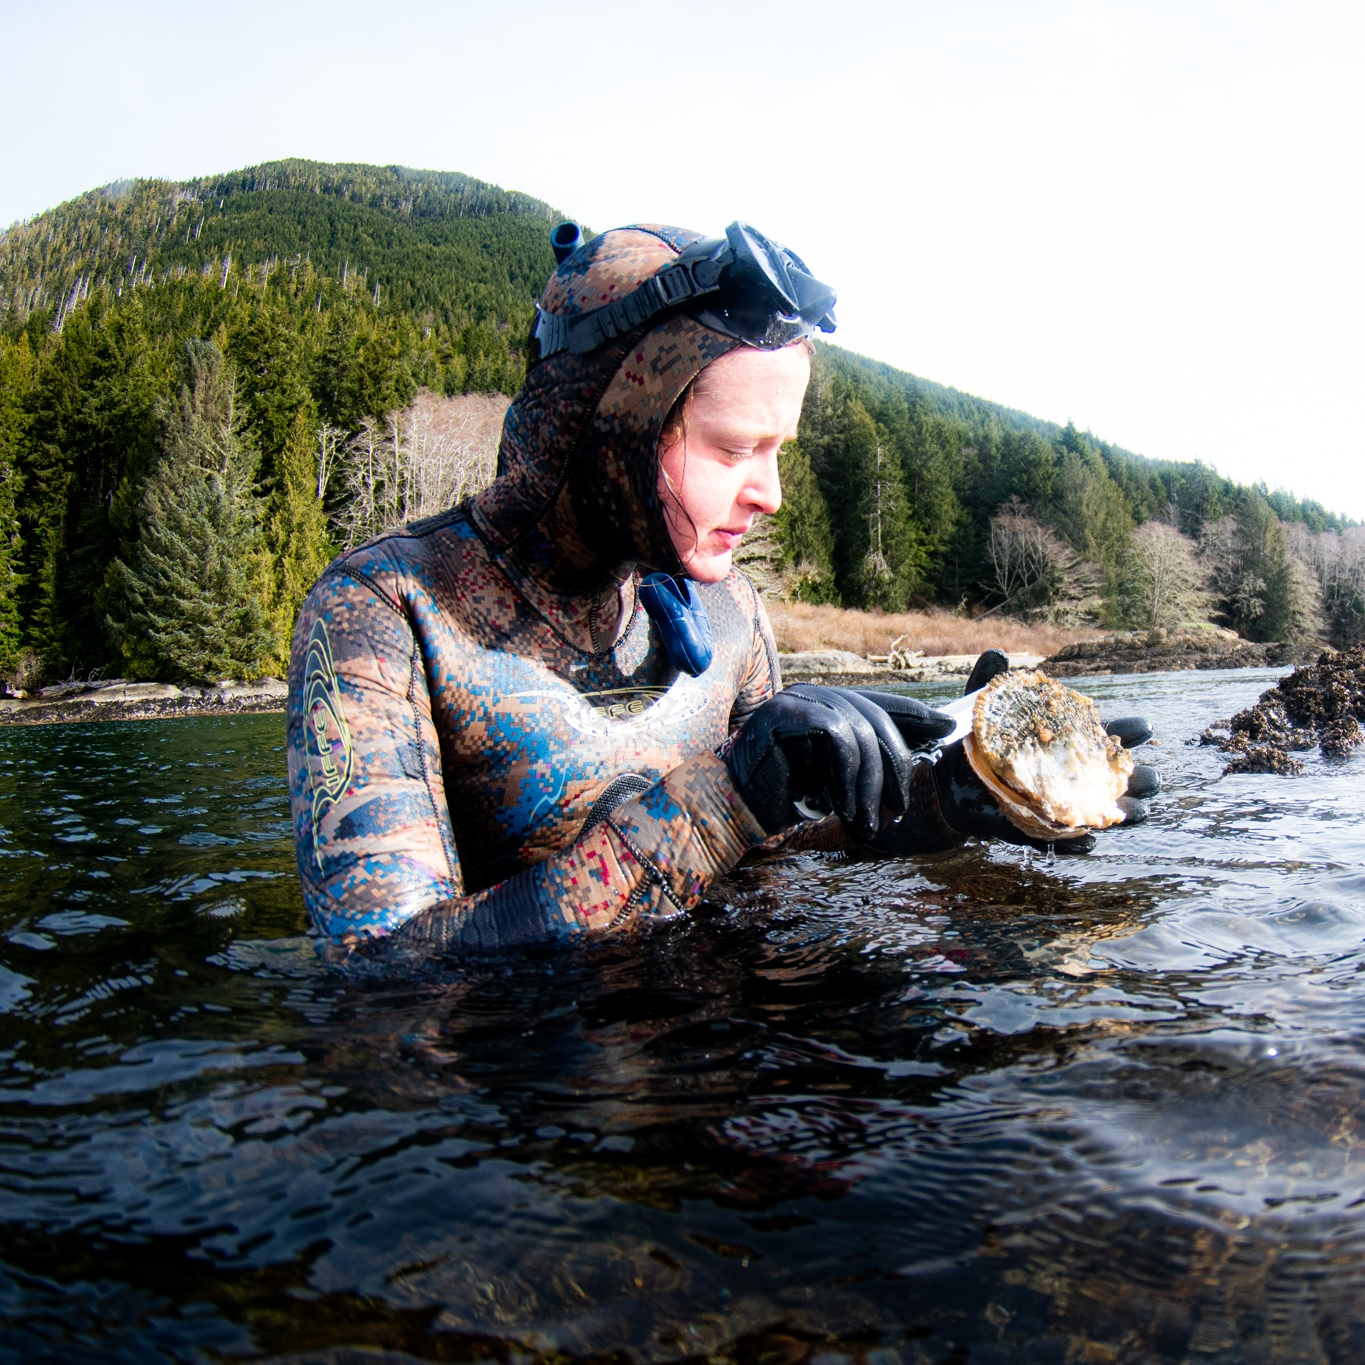 Episode 321: Searching for Seafood in British Columbia